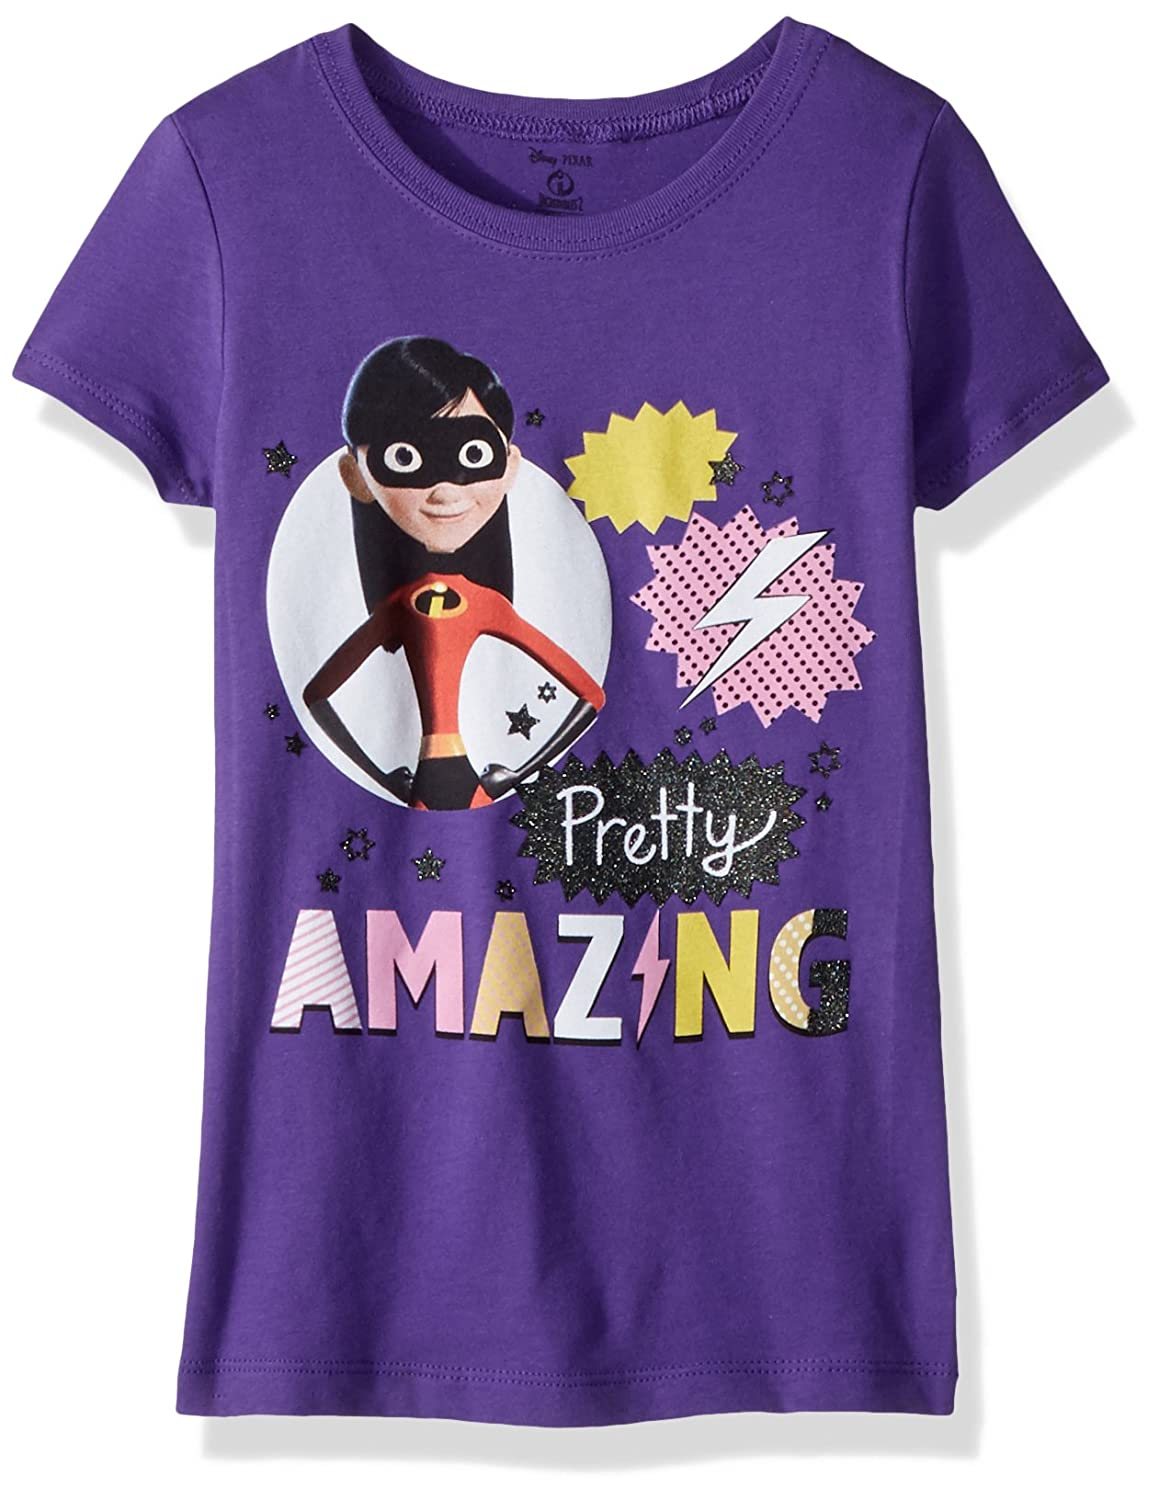 Disney Girls The Incredibles 2 Violet Pretty Amazing Short Sleeve T-Shirt